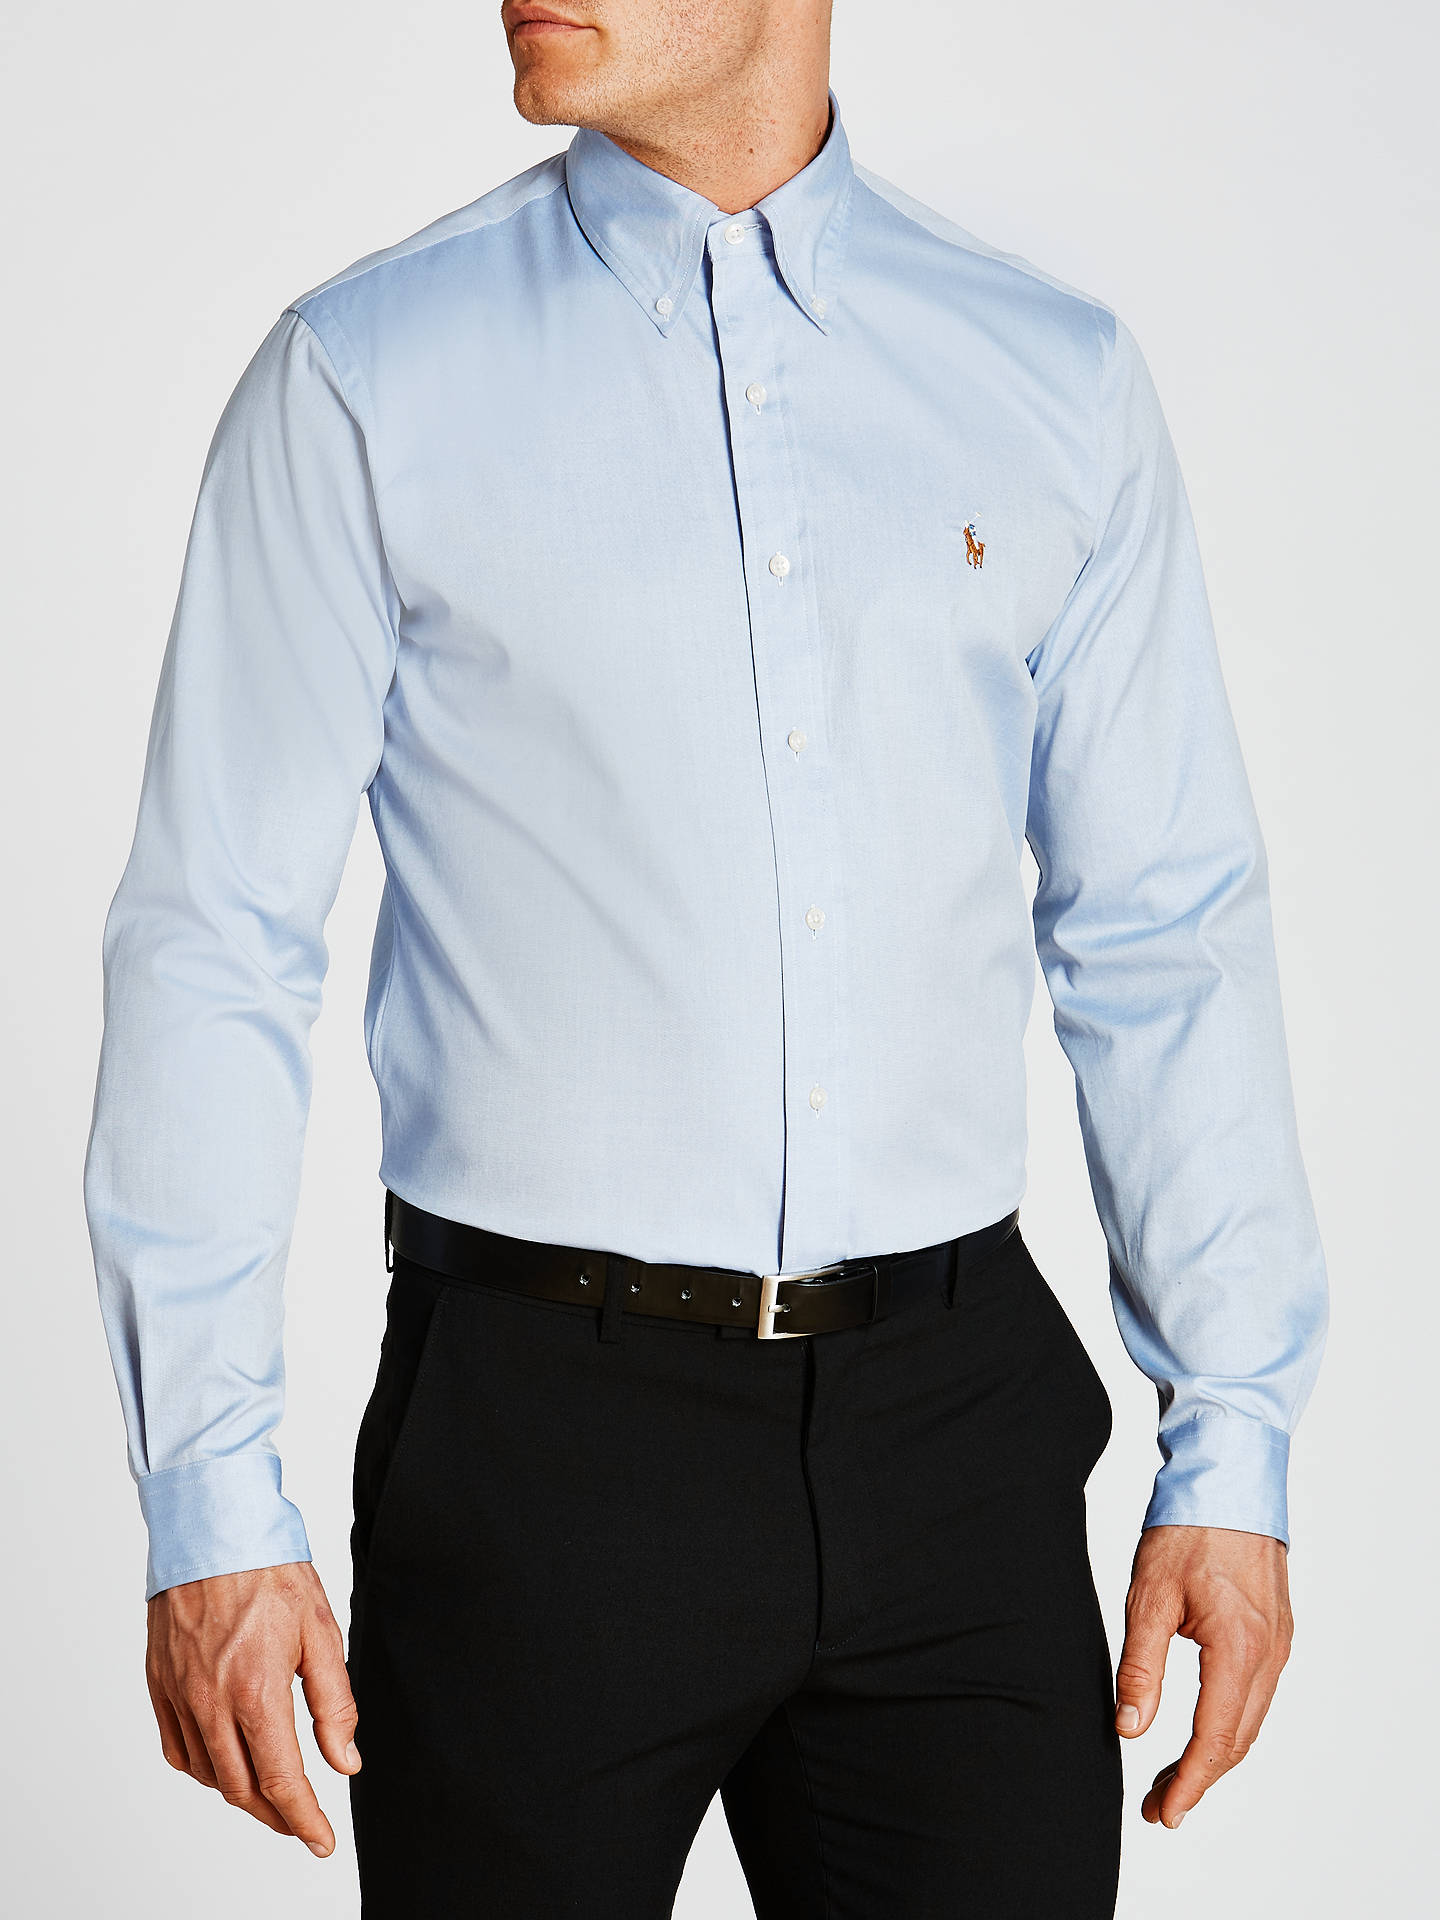 fbbda8bc73e6 Buy Polo Ralph Lauren Oxford Shirt, Blue, 15 Online at johnlewis.com ...